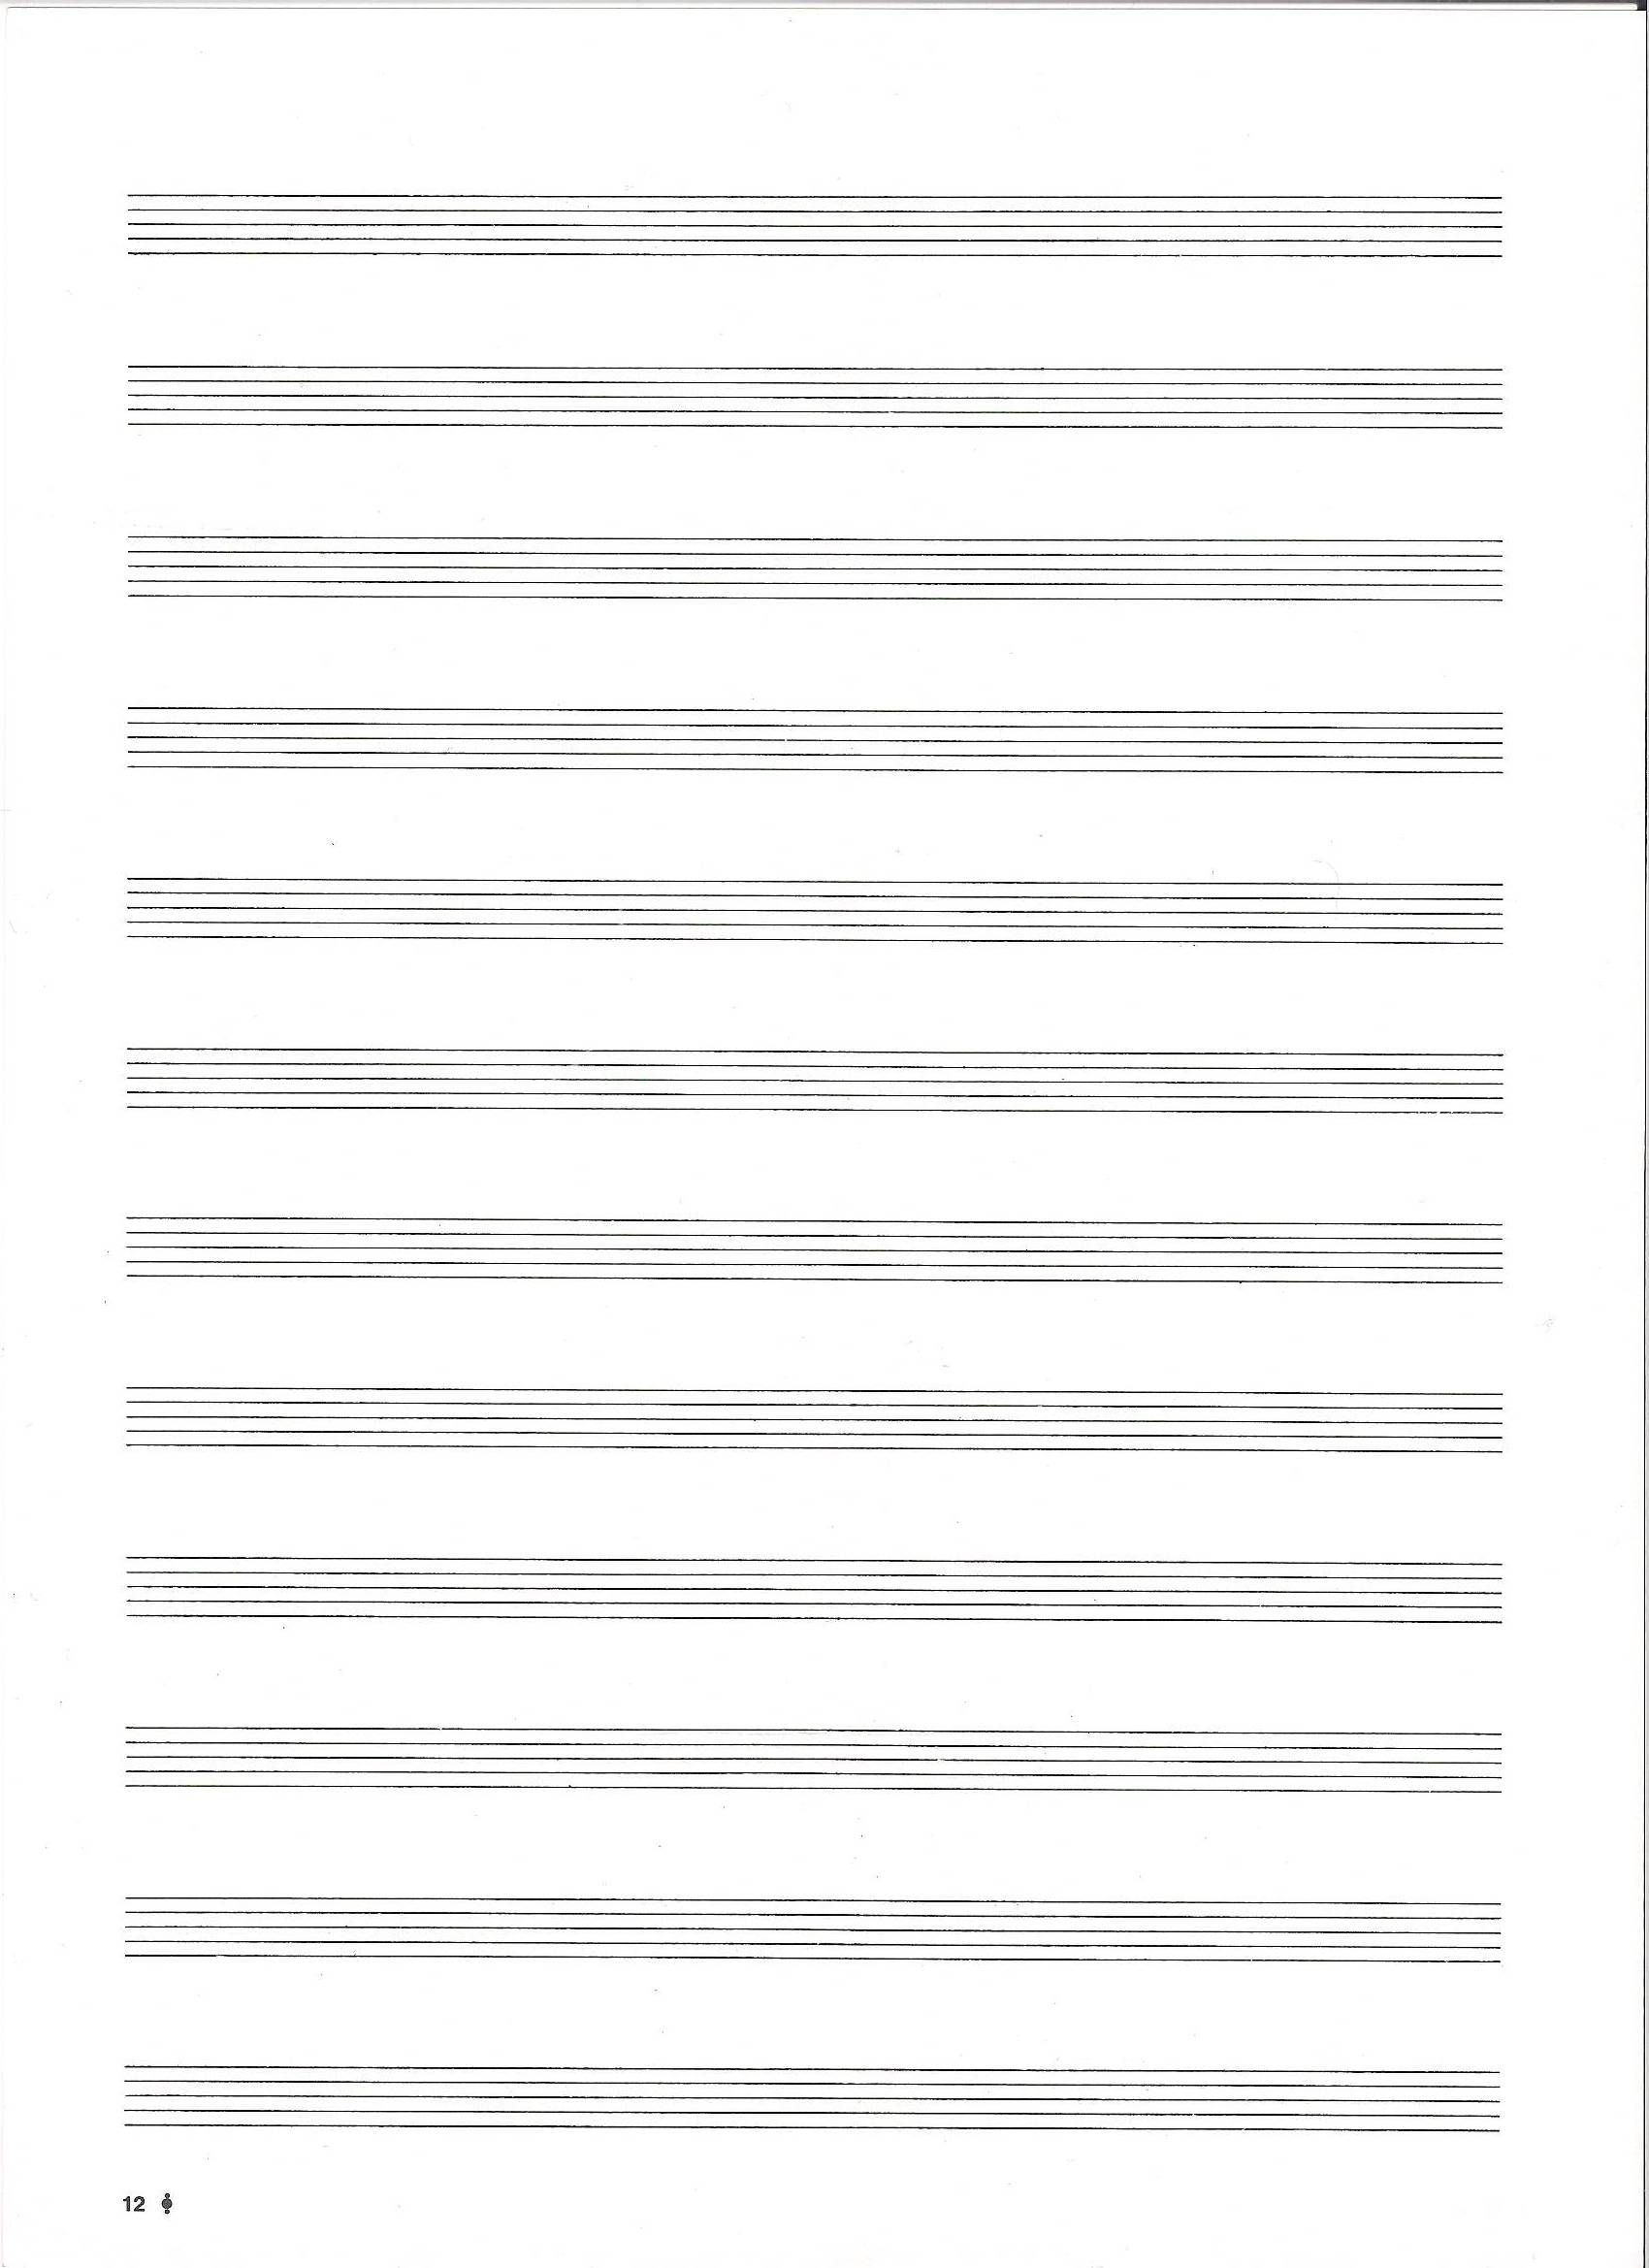 How to write your own sheet music sample cover letter for executive assistant positions